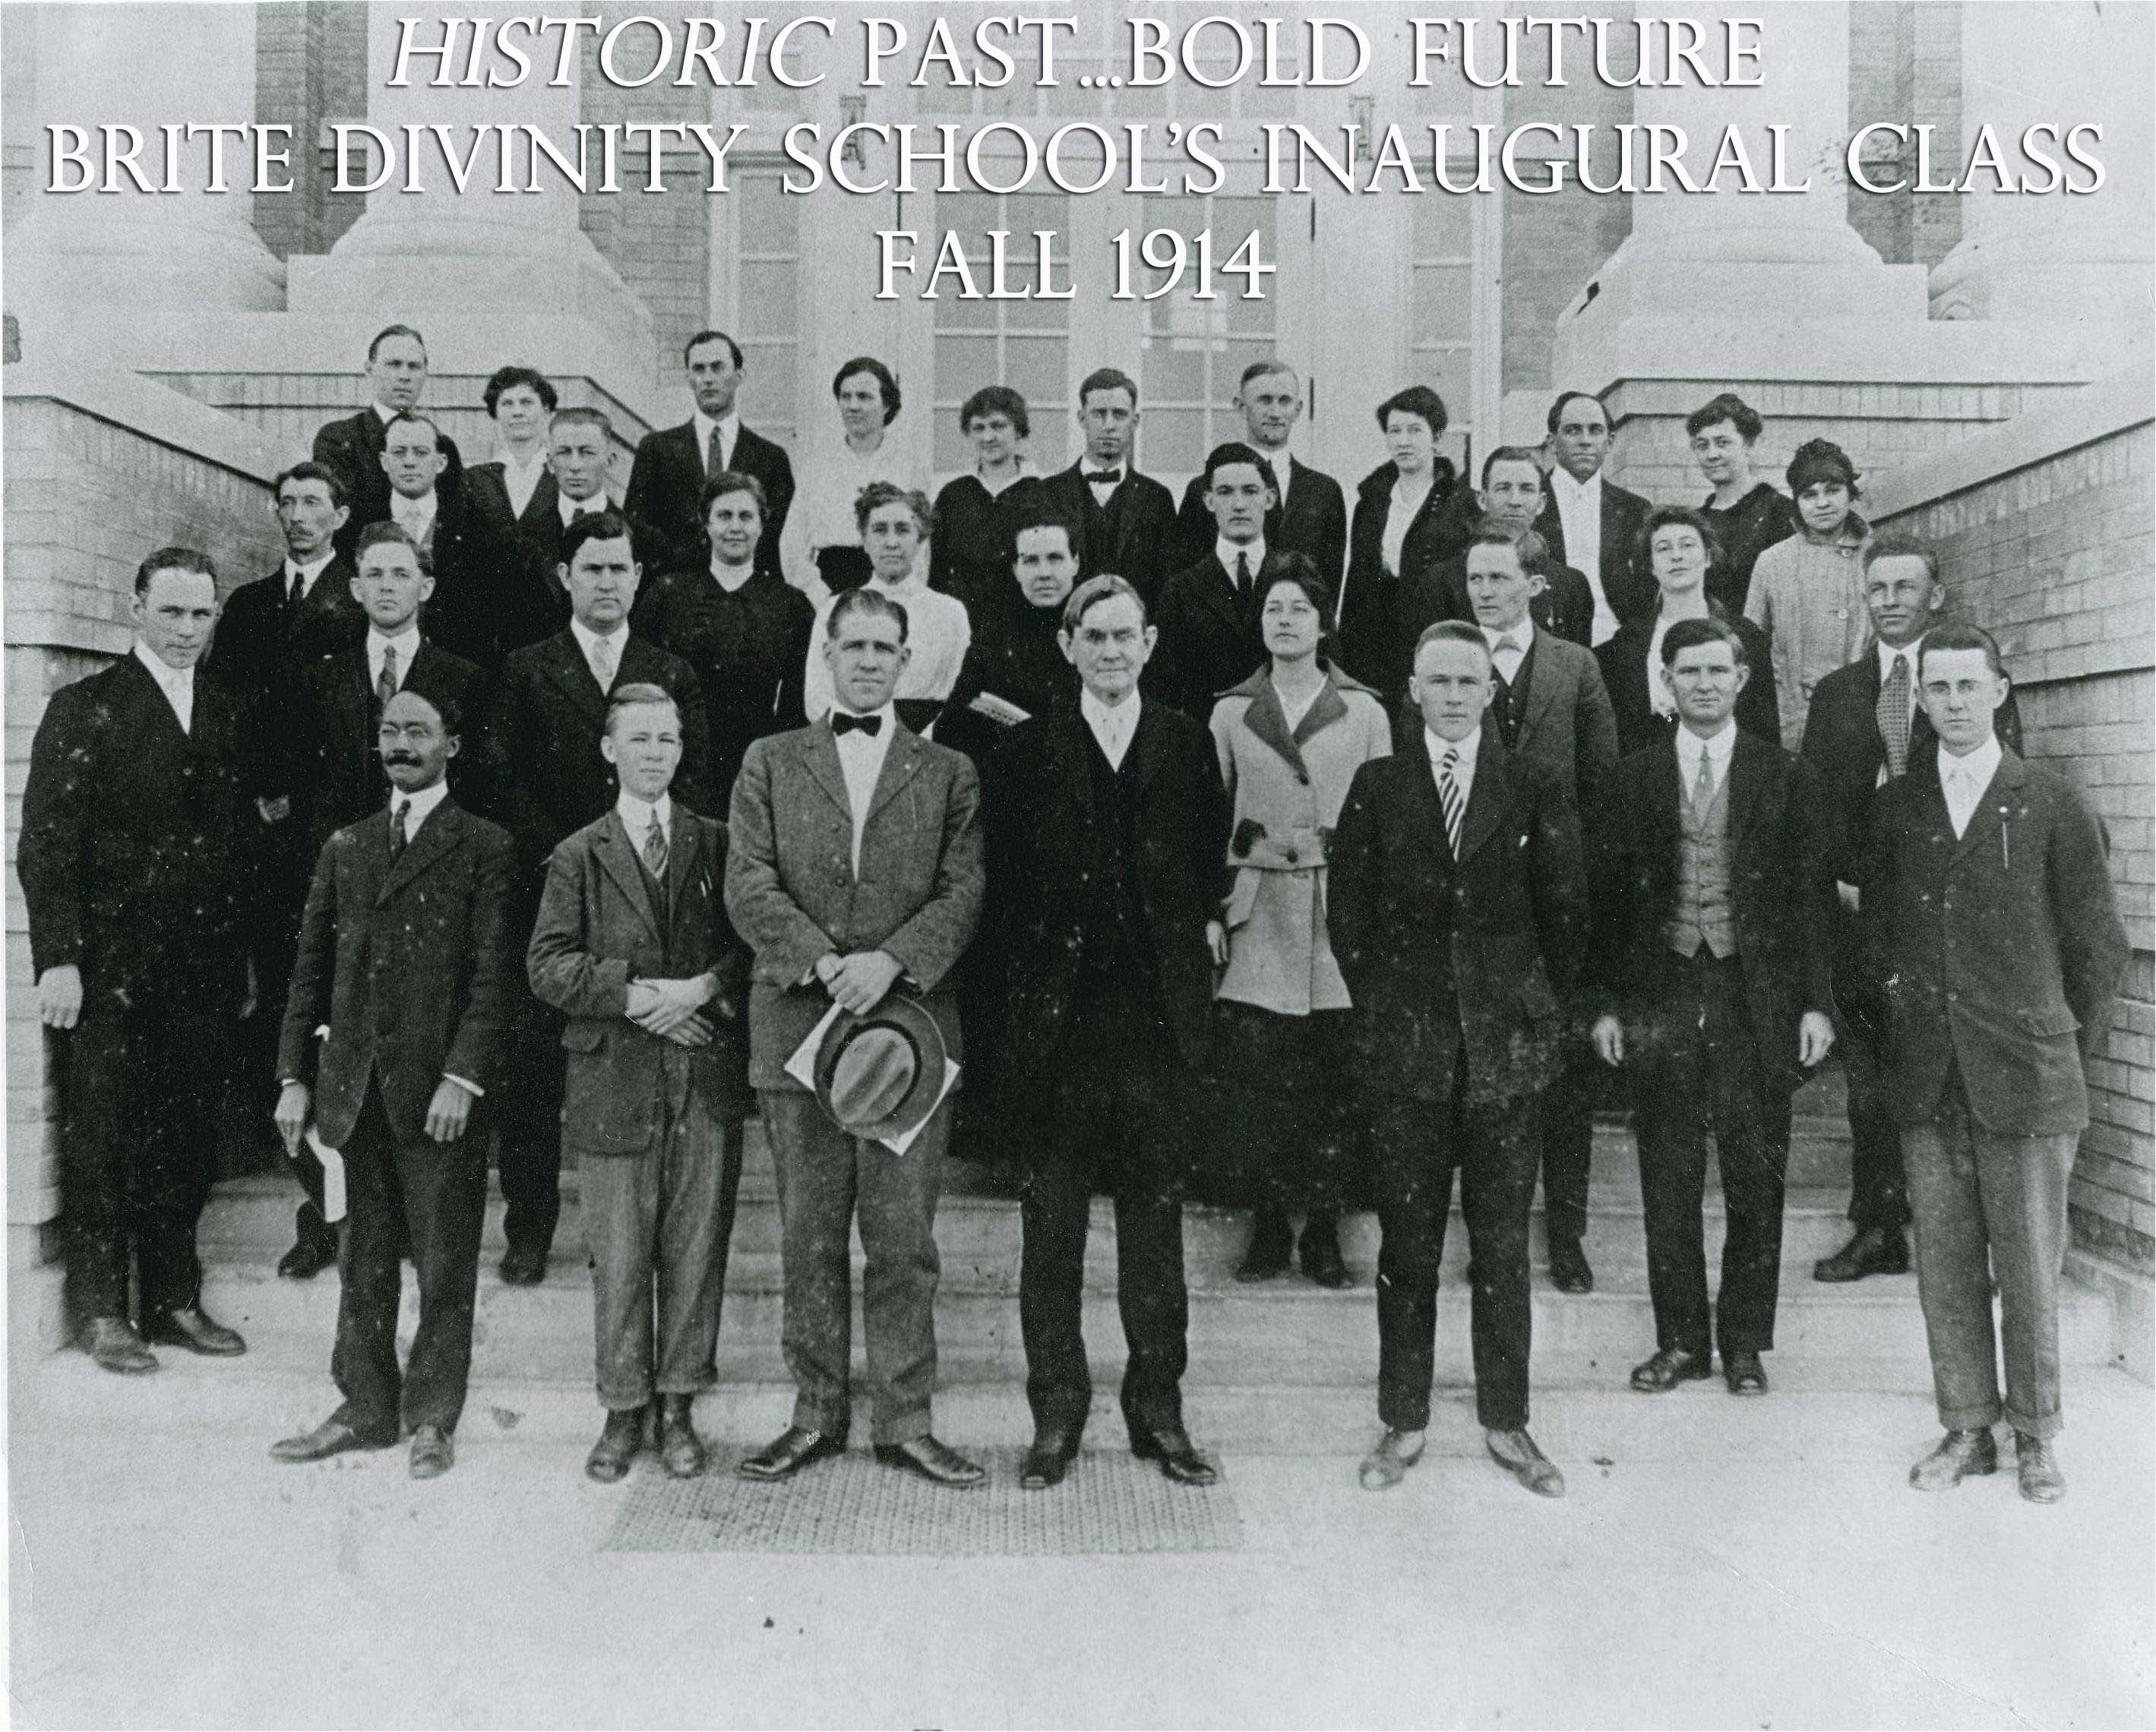 Historic Past...Bold Future: Brite Divinity School's Inaugural Class, Fall 1914